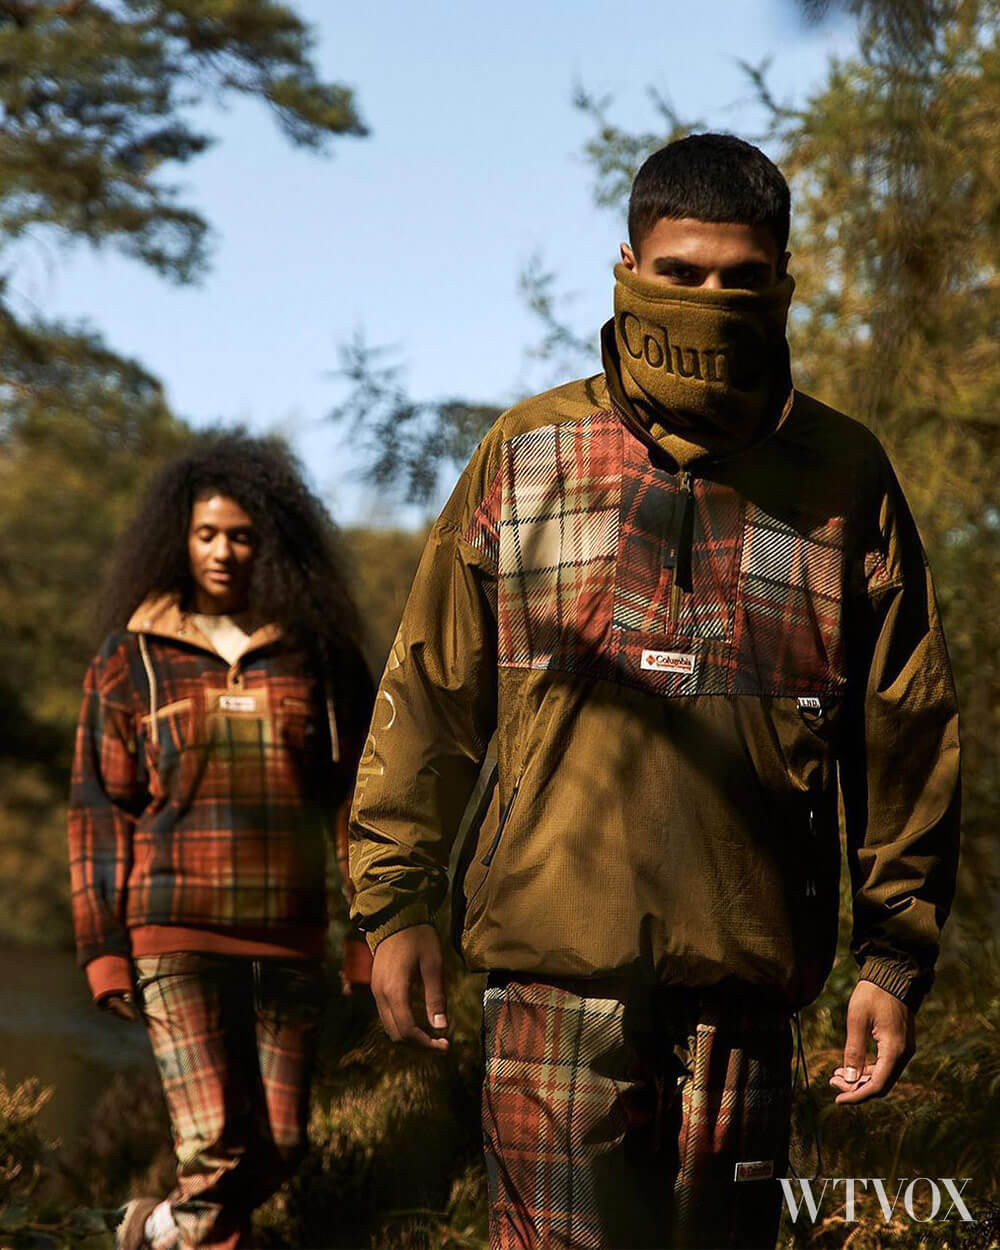 Columbia Outdoor clothing brand